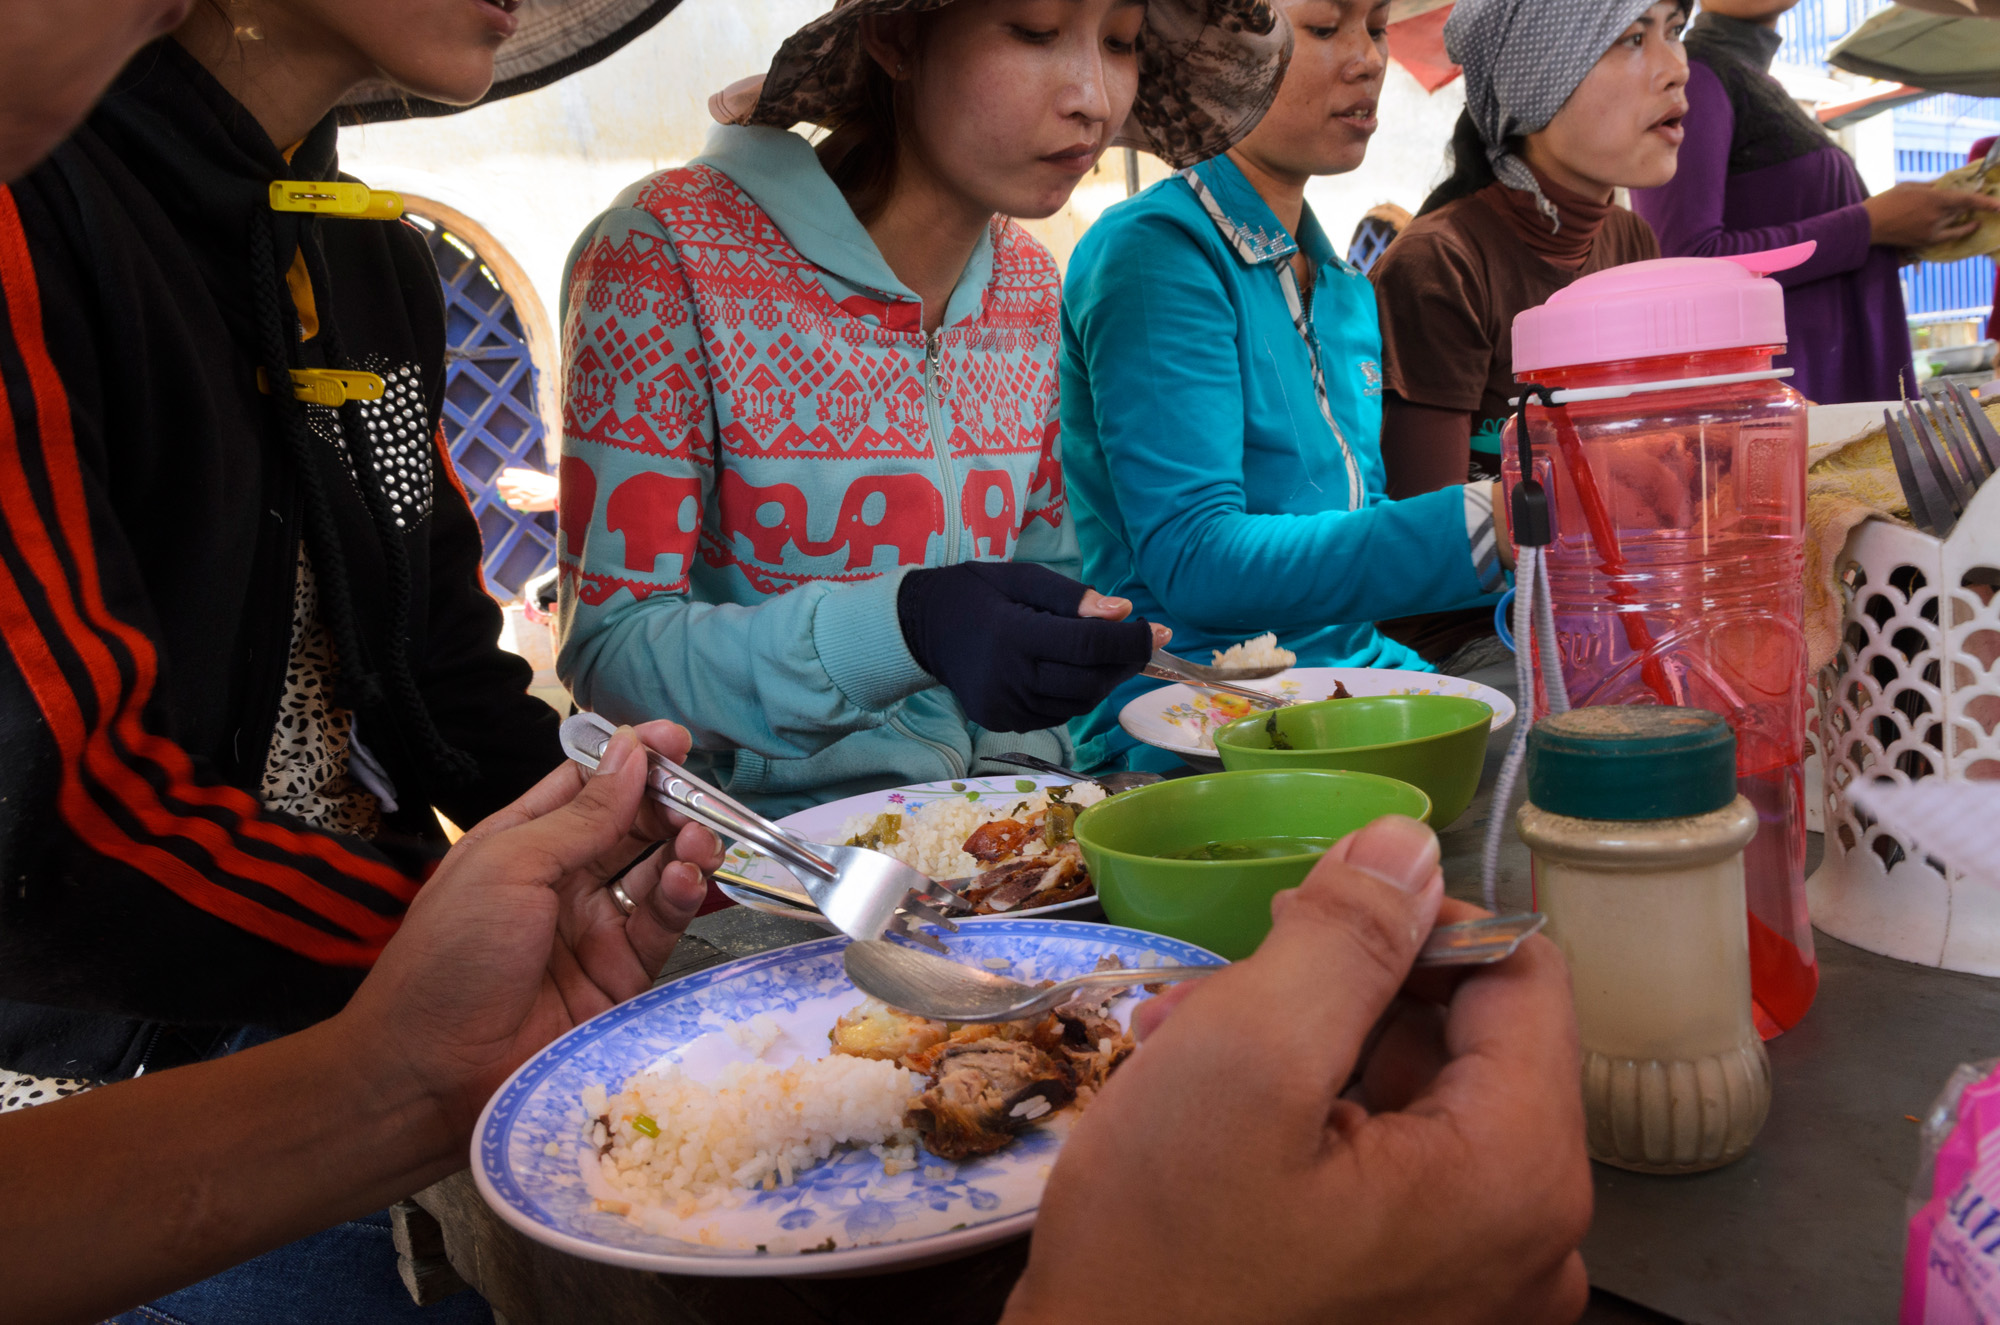 Young women eat  lunches of rice and soup at a food stall outside a factory on the northern outskirts of Phnom Penh, Cambodia. Recent reports highlight the rate of malnutrition among Cambodia's tens of thousands of garment factory workers.